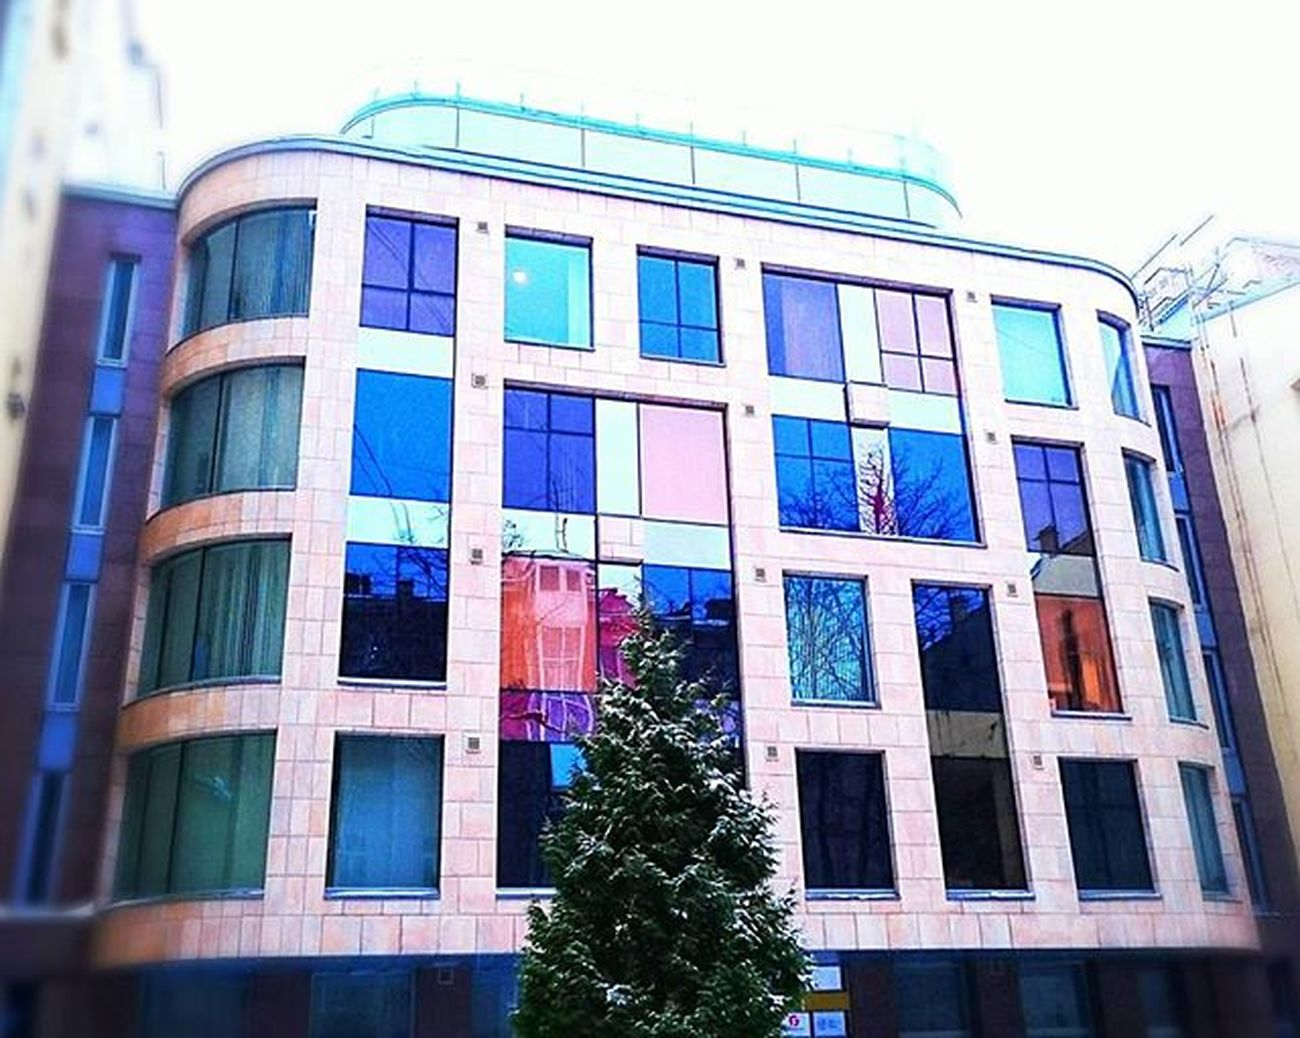 The world in colors Architectures House Bilding Color Spb Peterburg World мир краски  Beautyful  Питер Спб зданияпитера дом архитектура